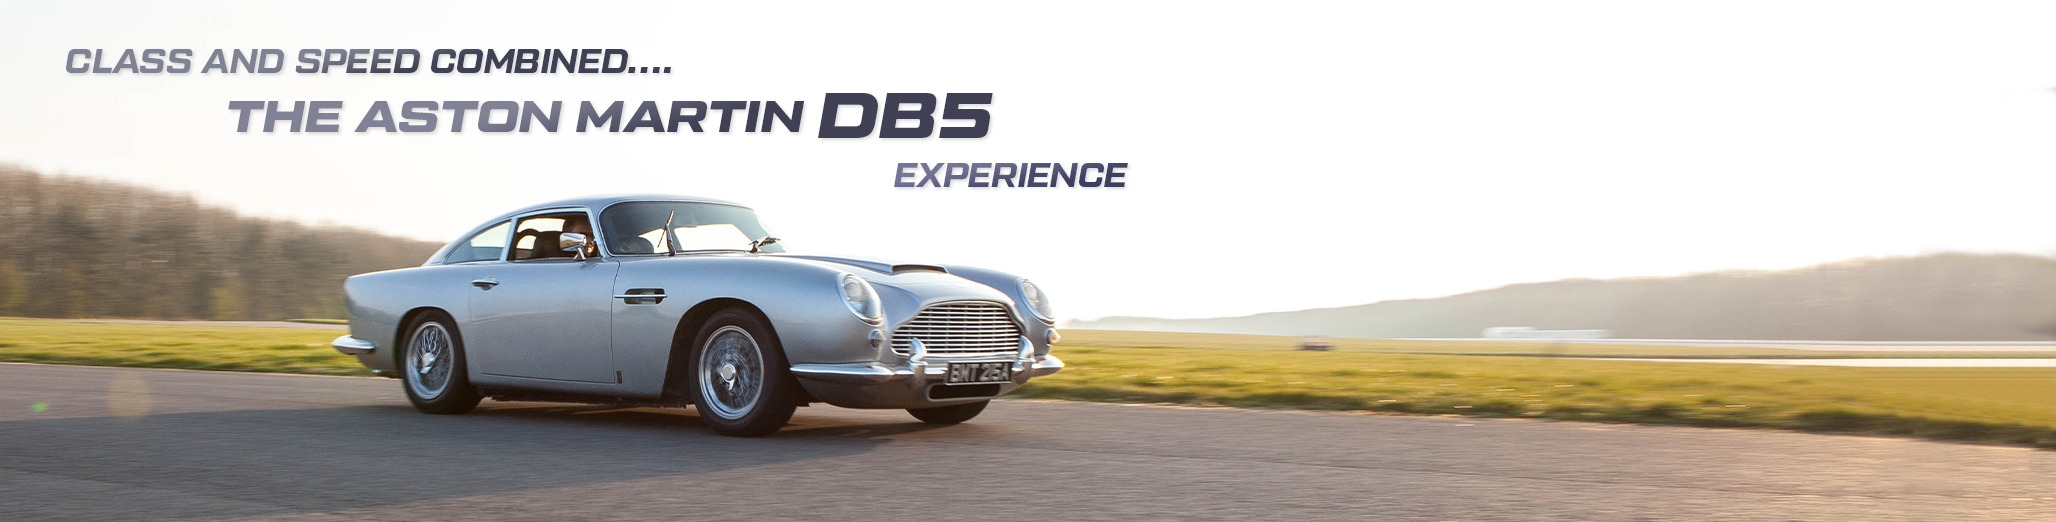 Aston Martin DB5 Experience Banner